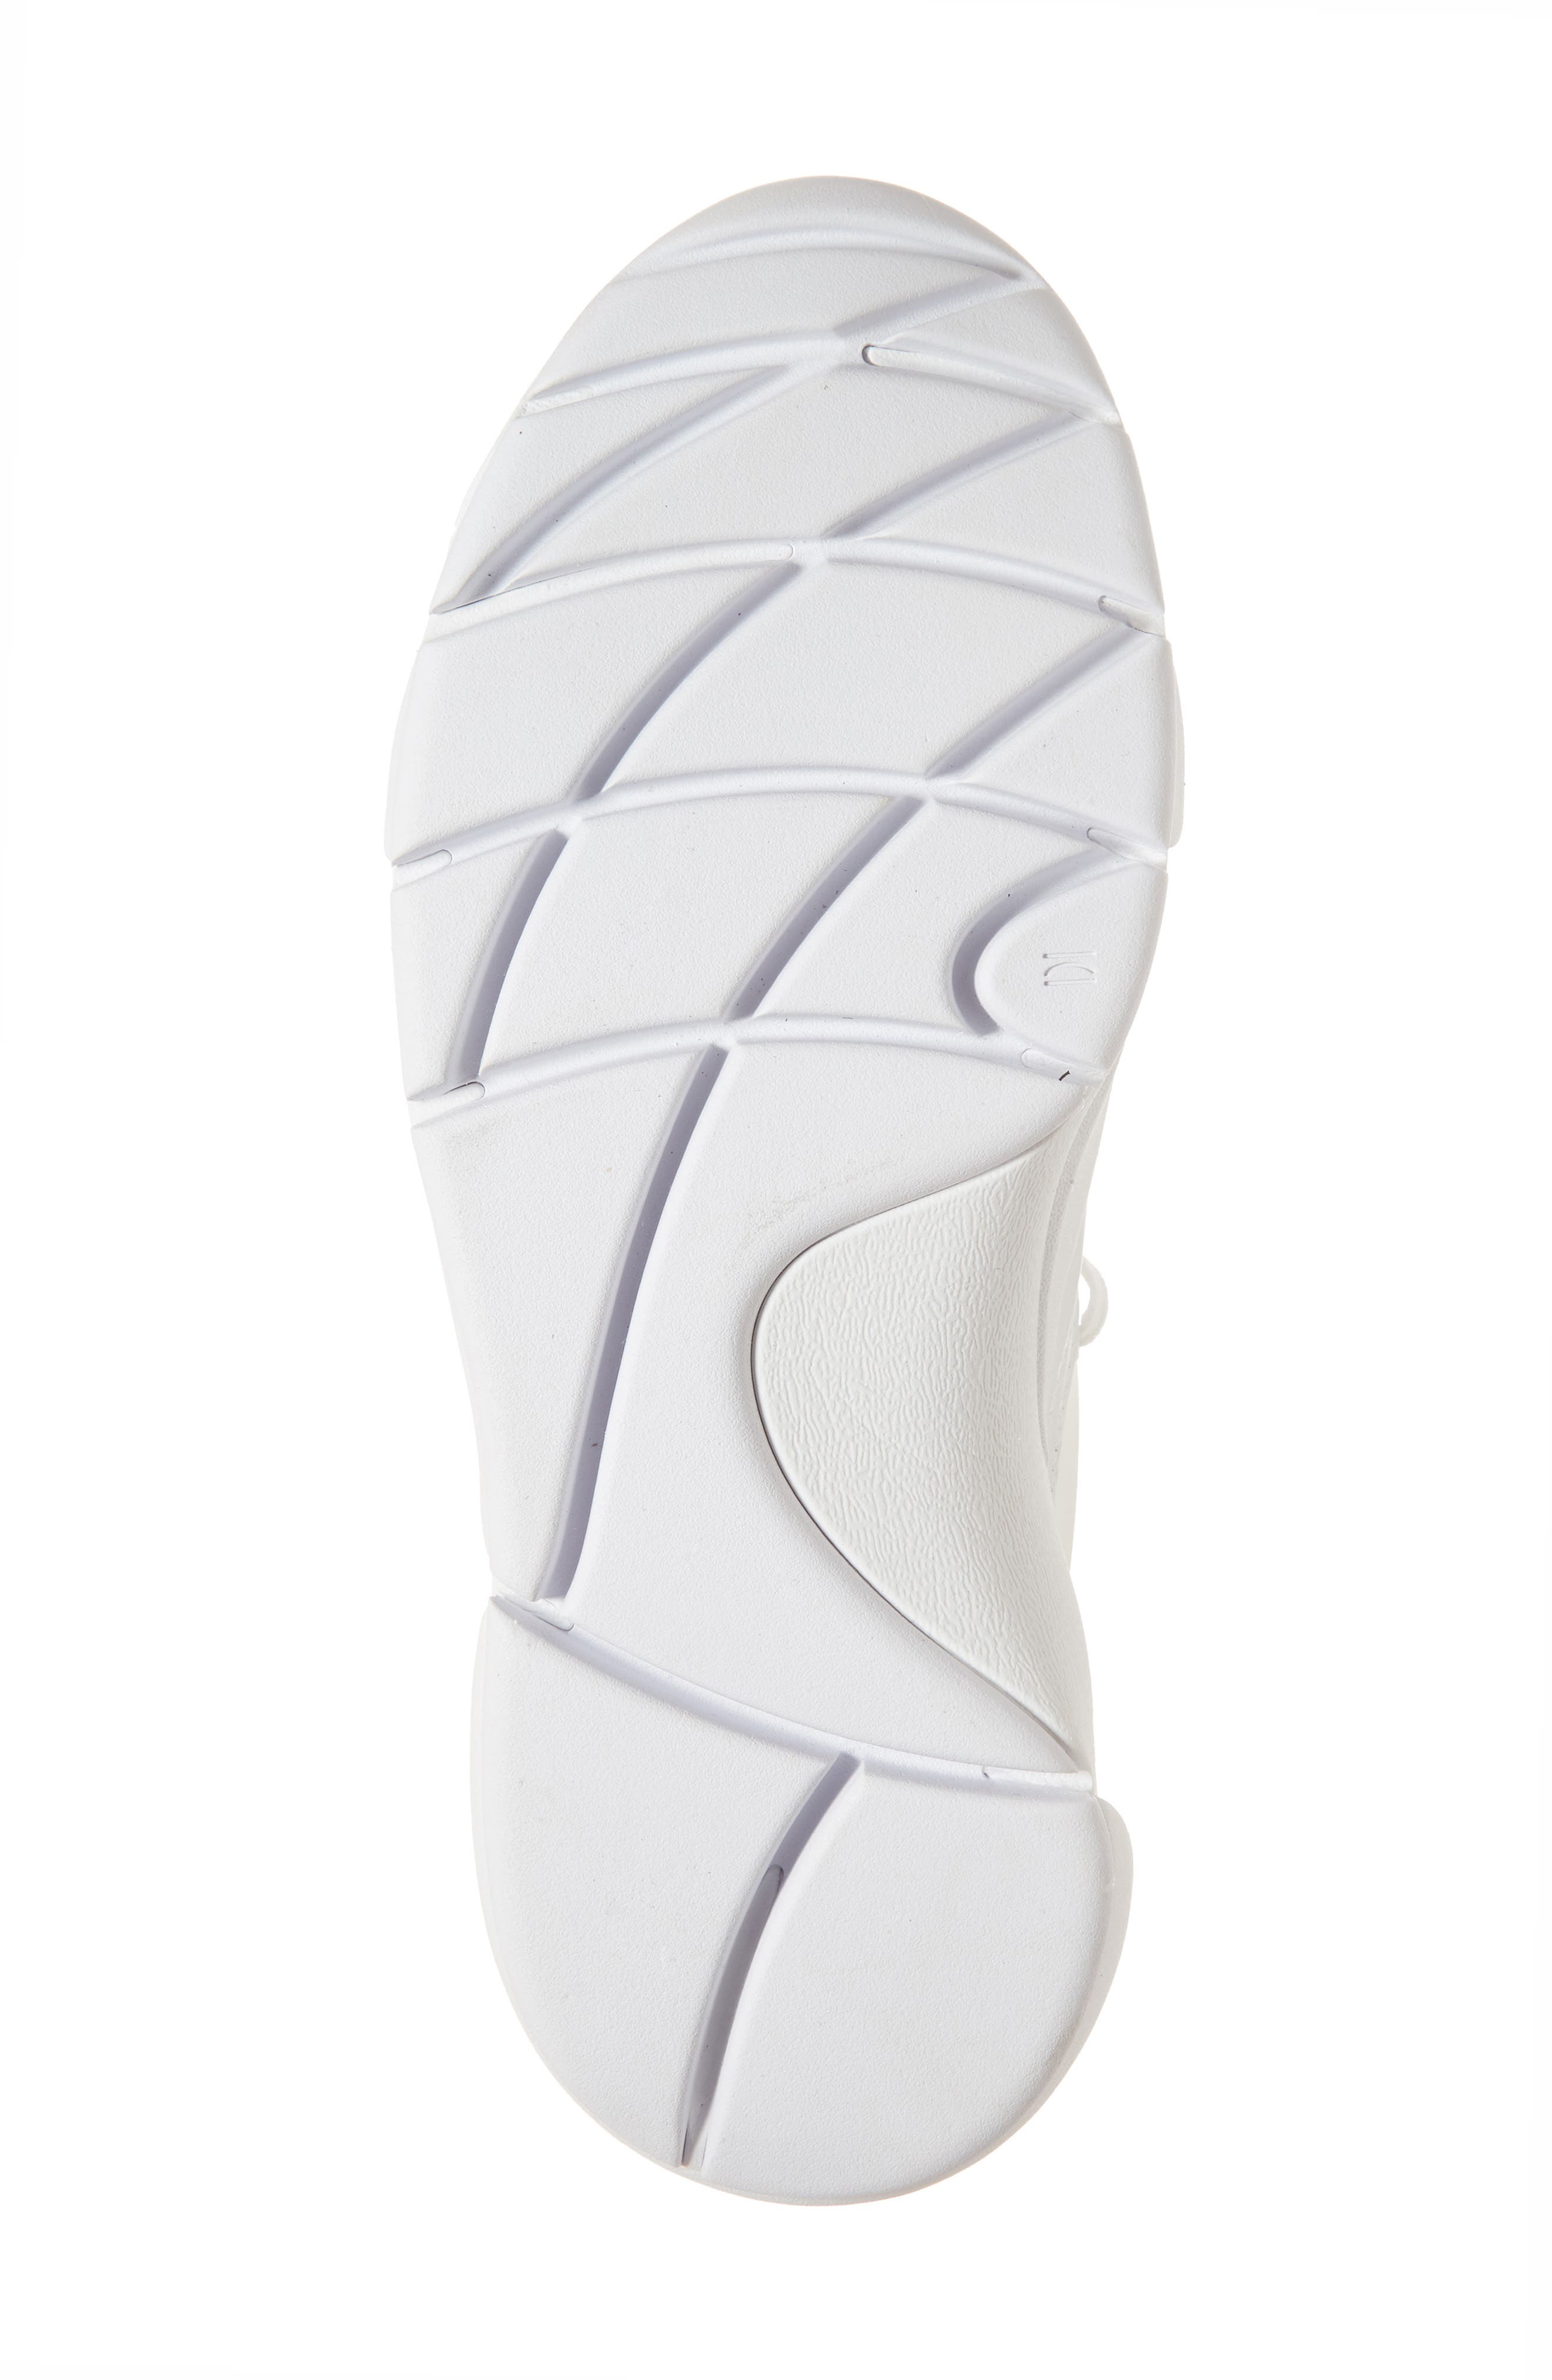 Clear Weather The Cloud Stryke Sneaker,                             Alternate thumbnail 6, color,                             White Hawk